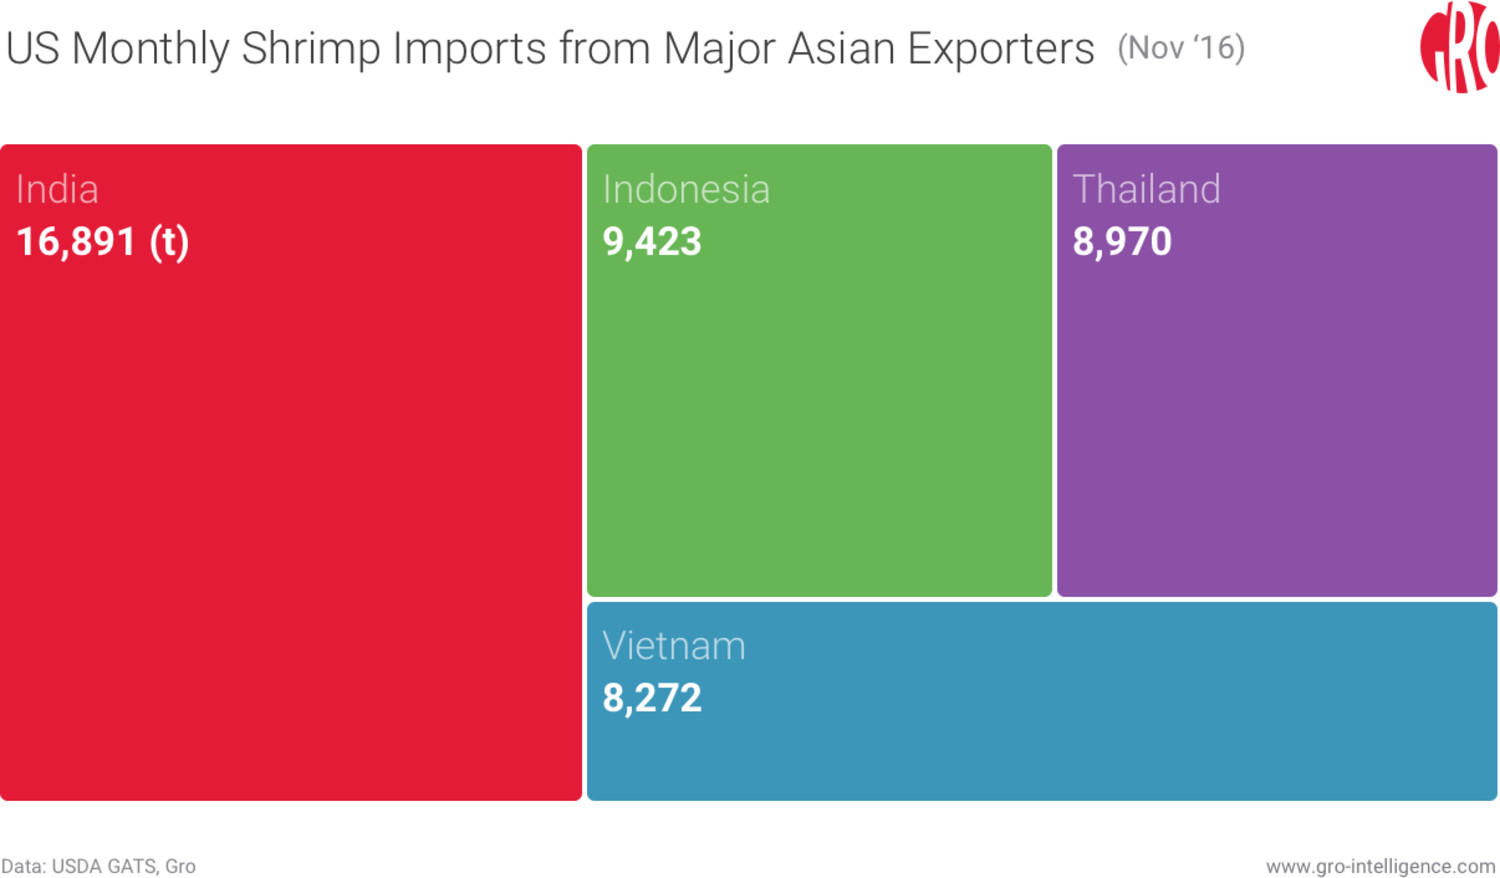 US Monthly Shrimp Imports